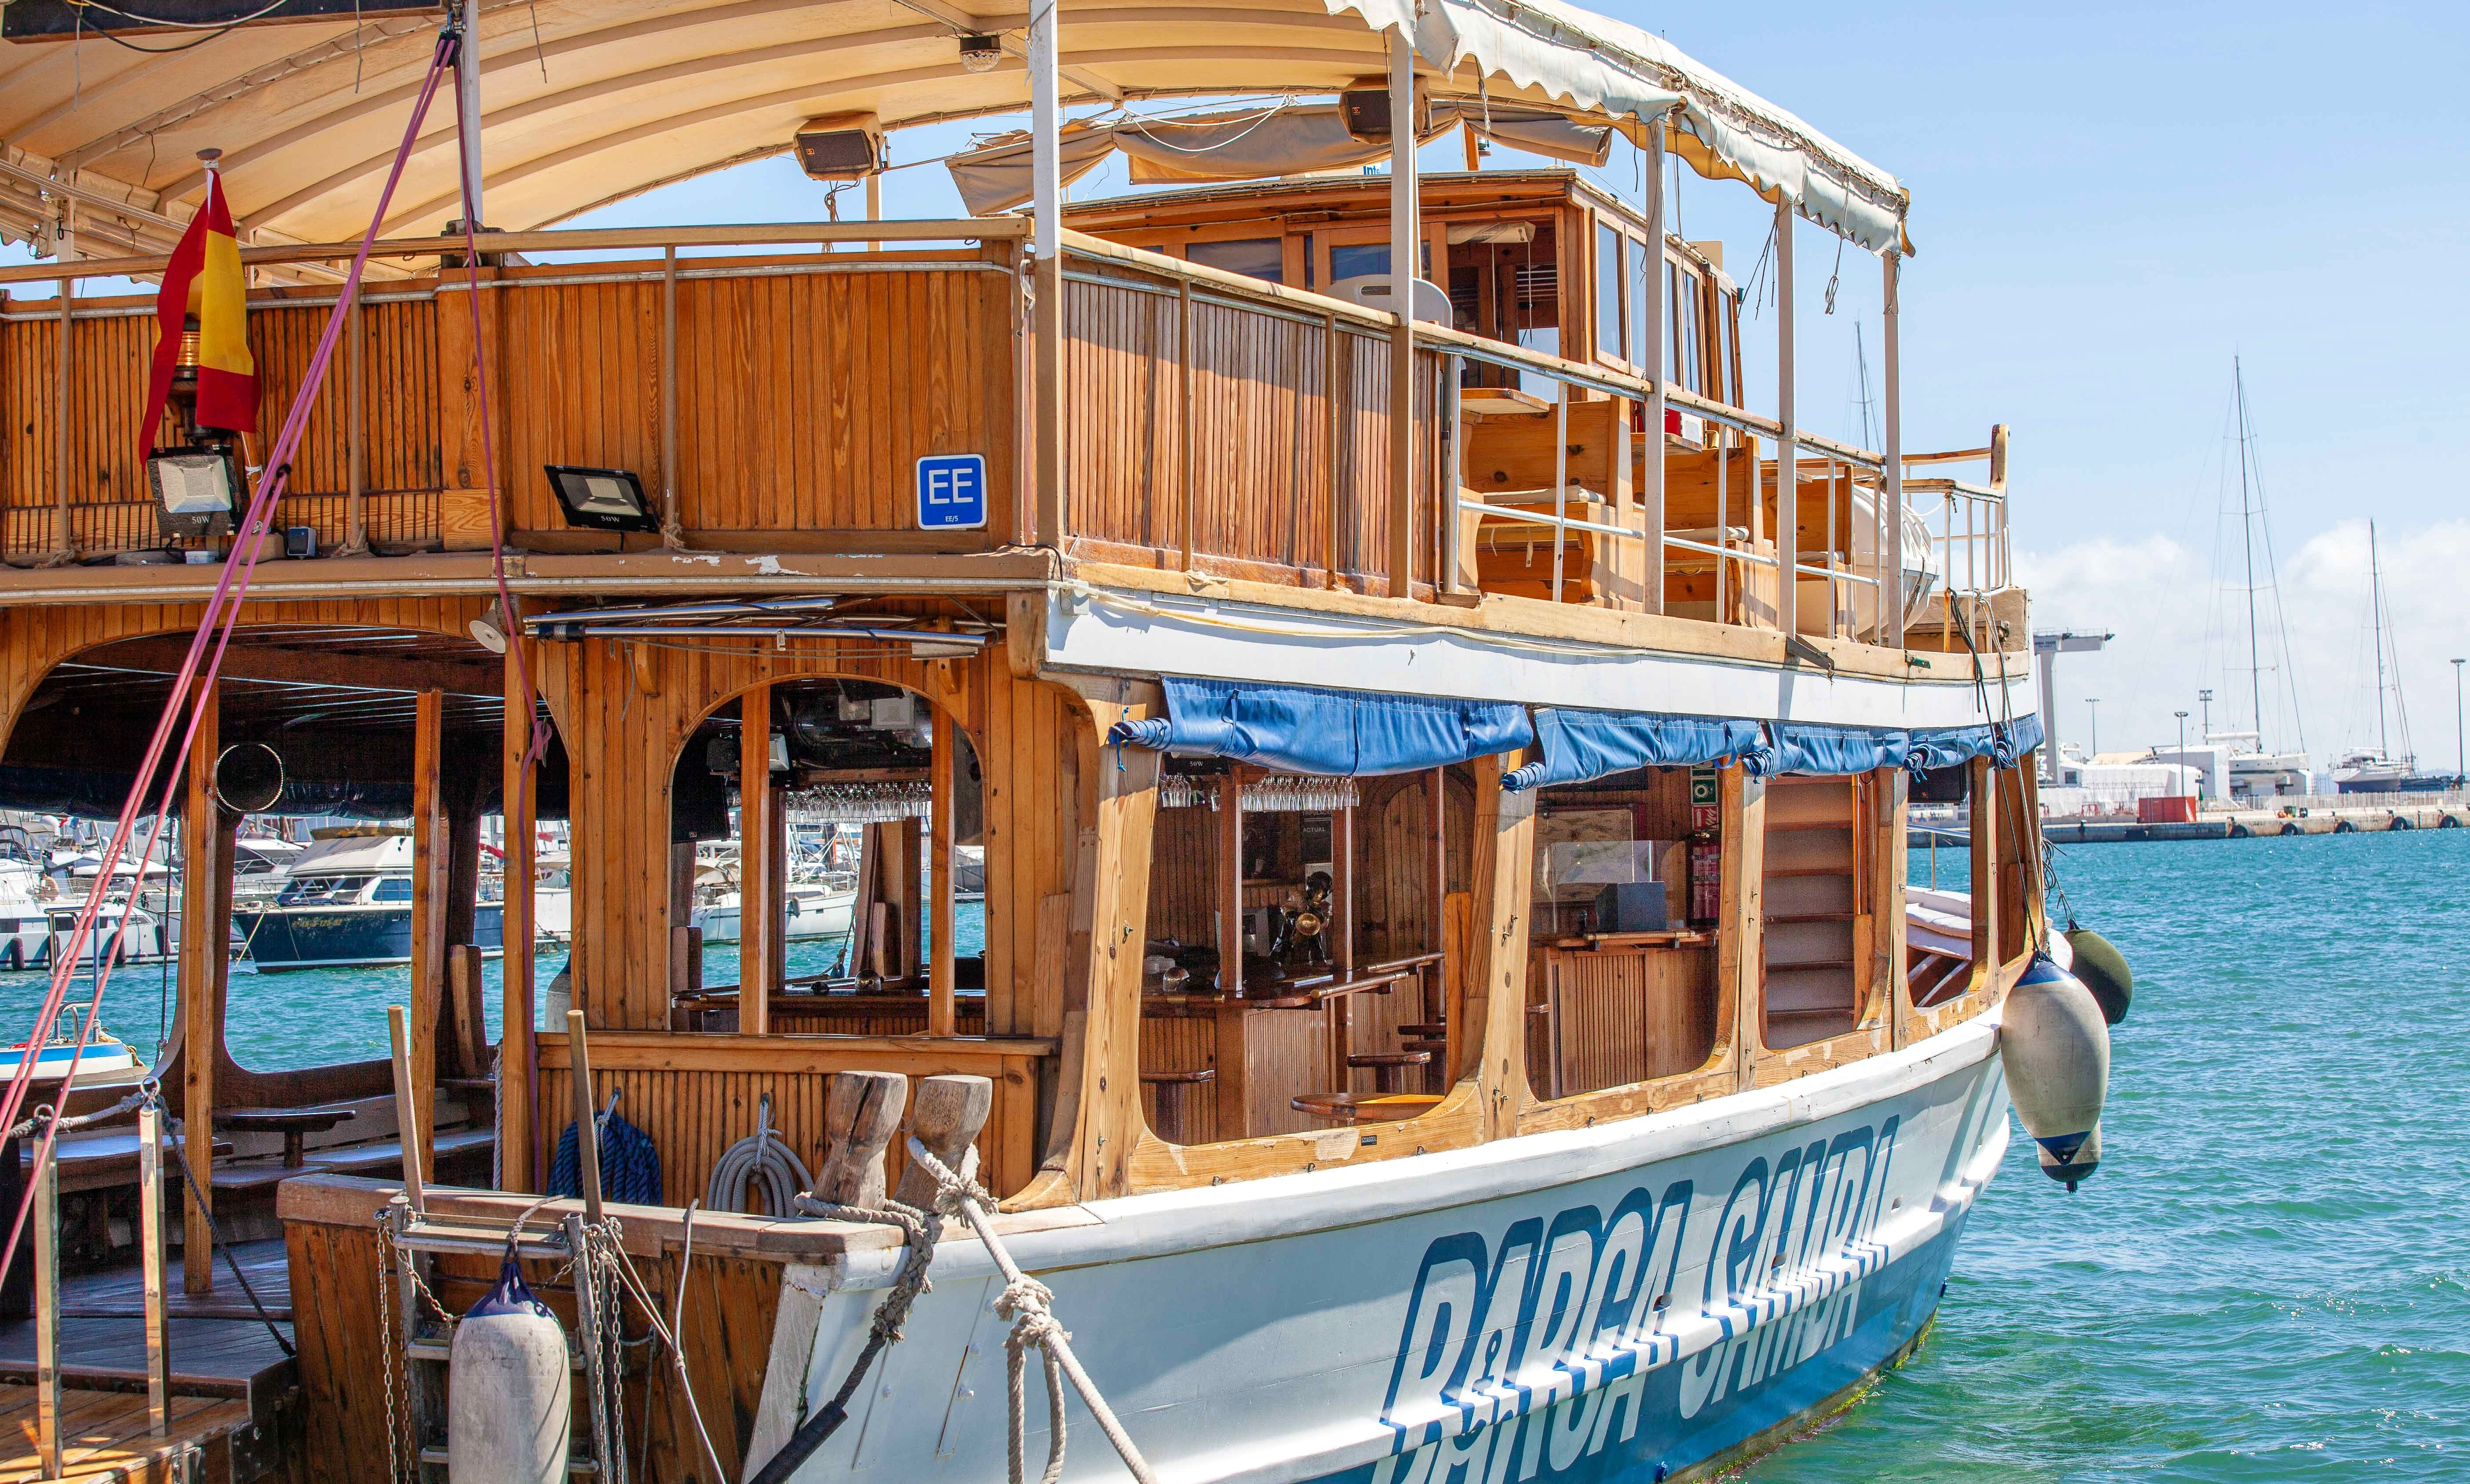 Private Party Boat Charter In Palma De Mallorca Getmyboat